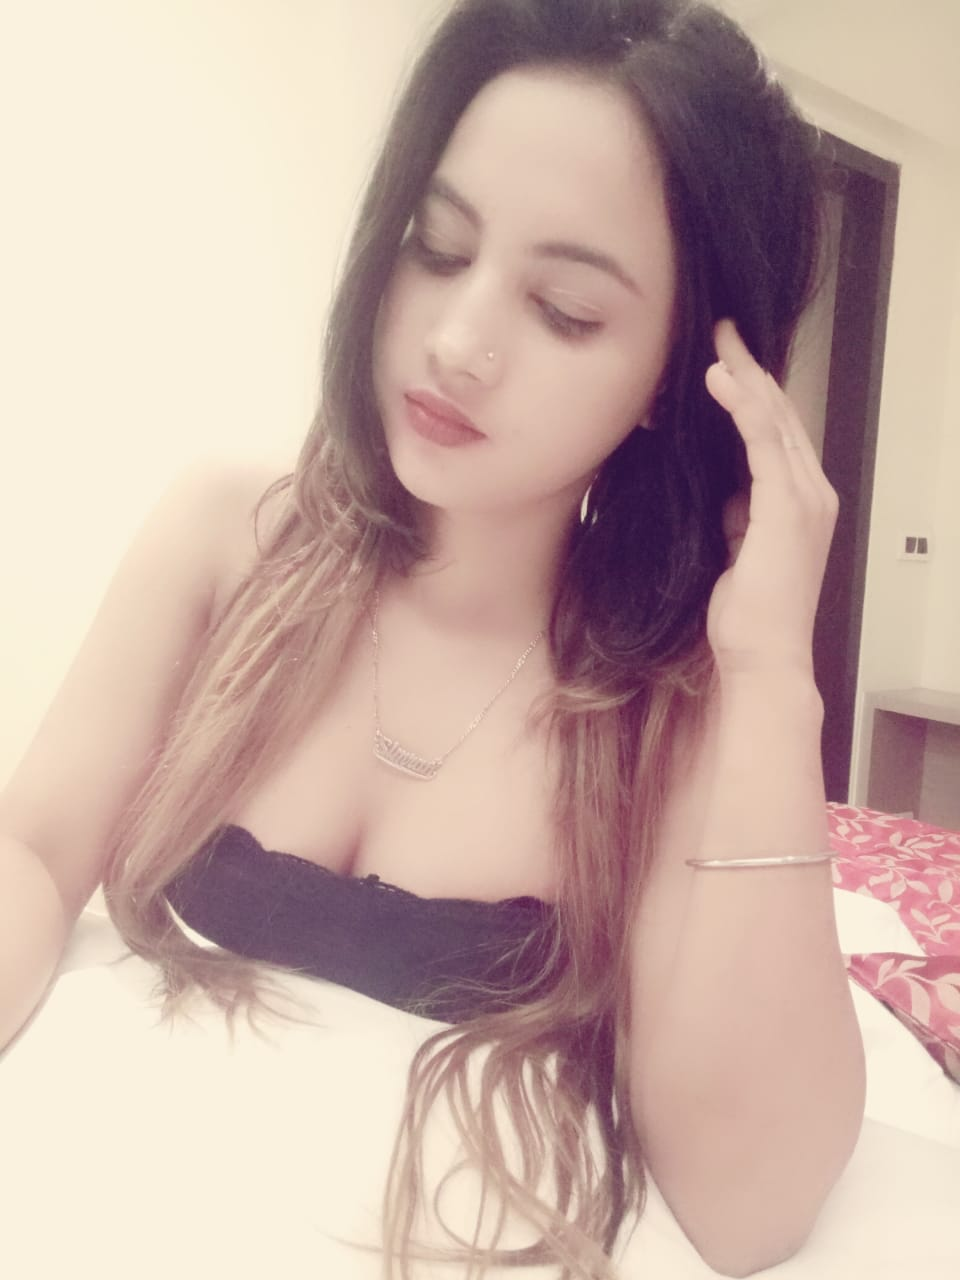 dahisar Independent Escorts In